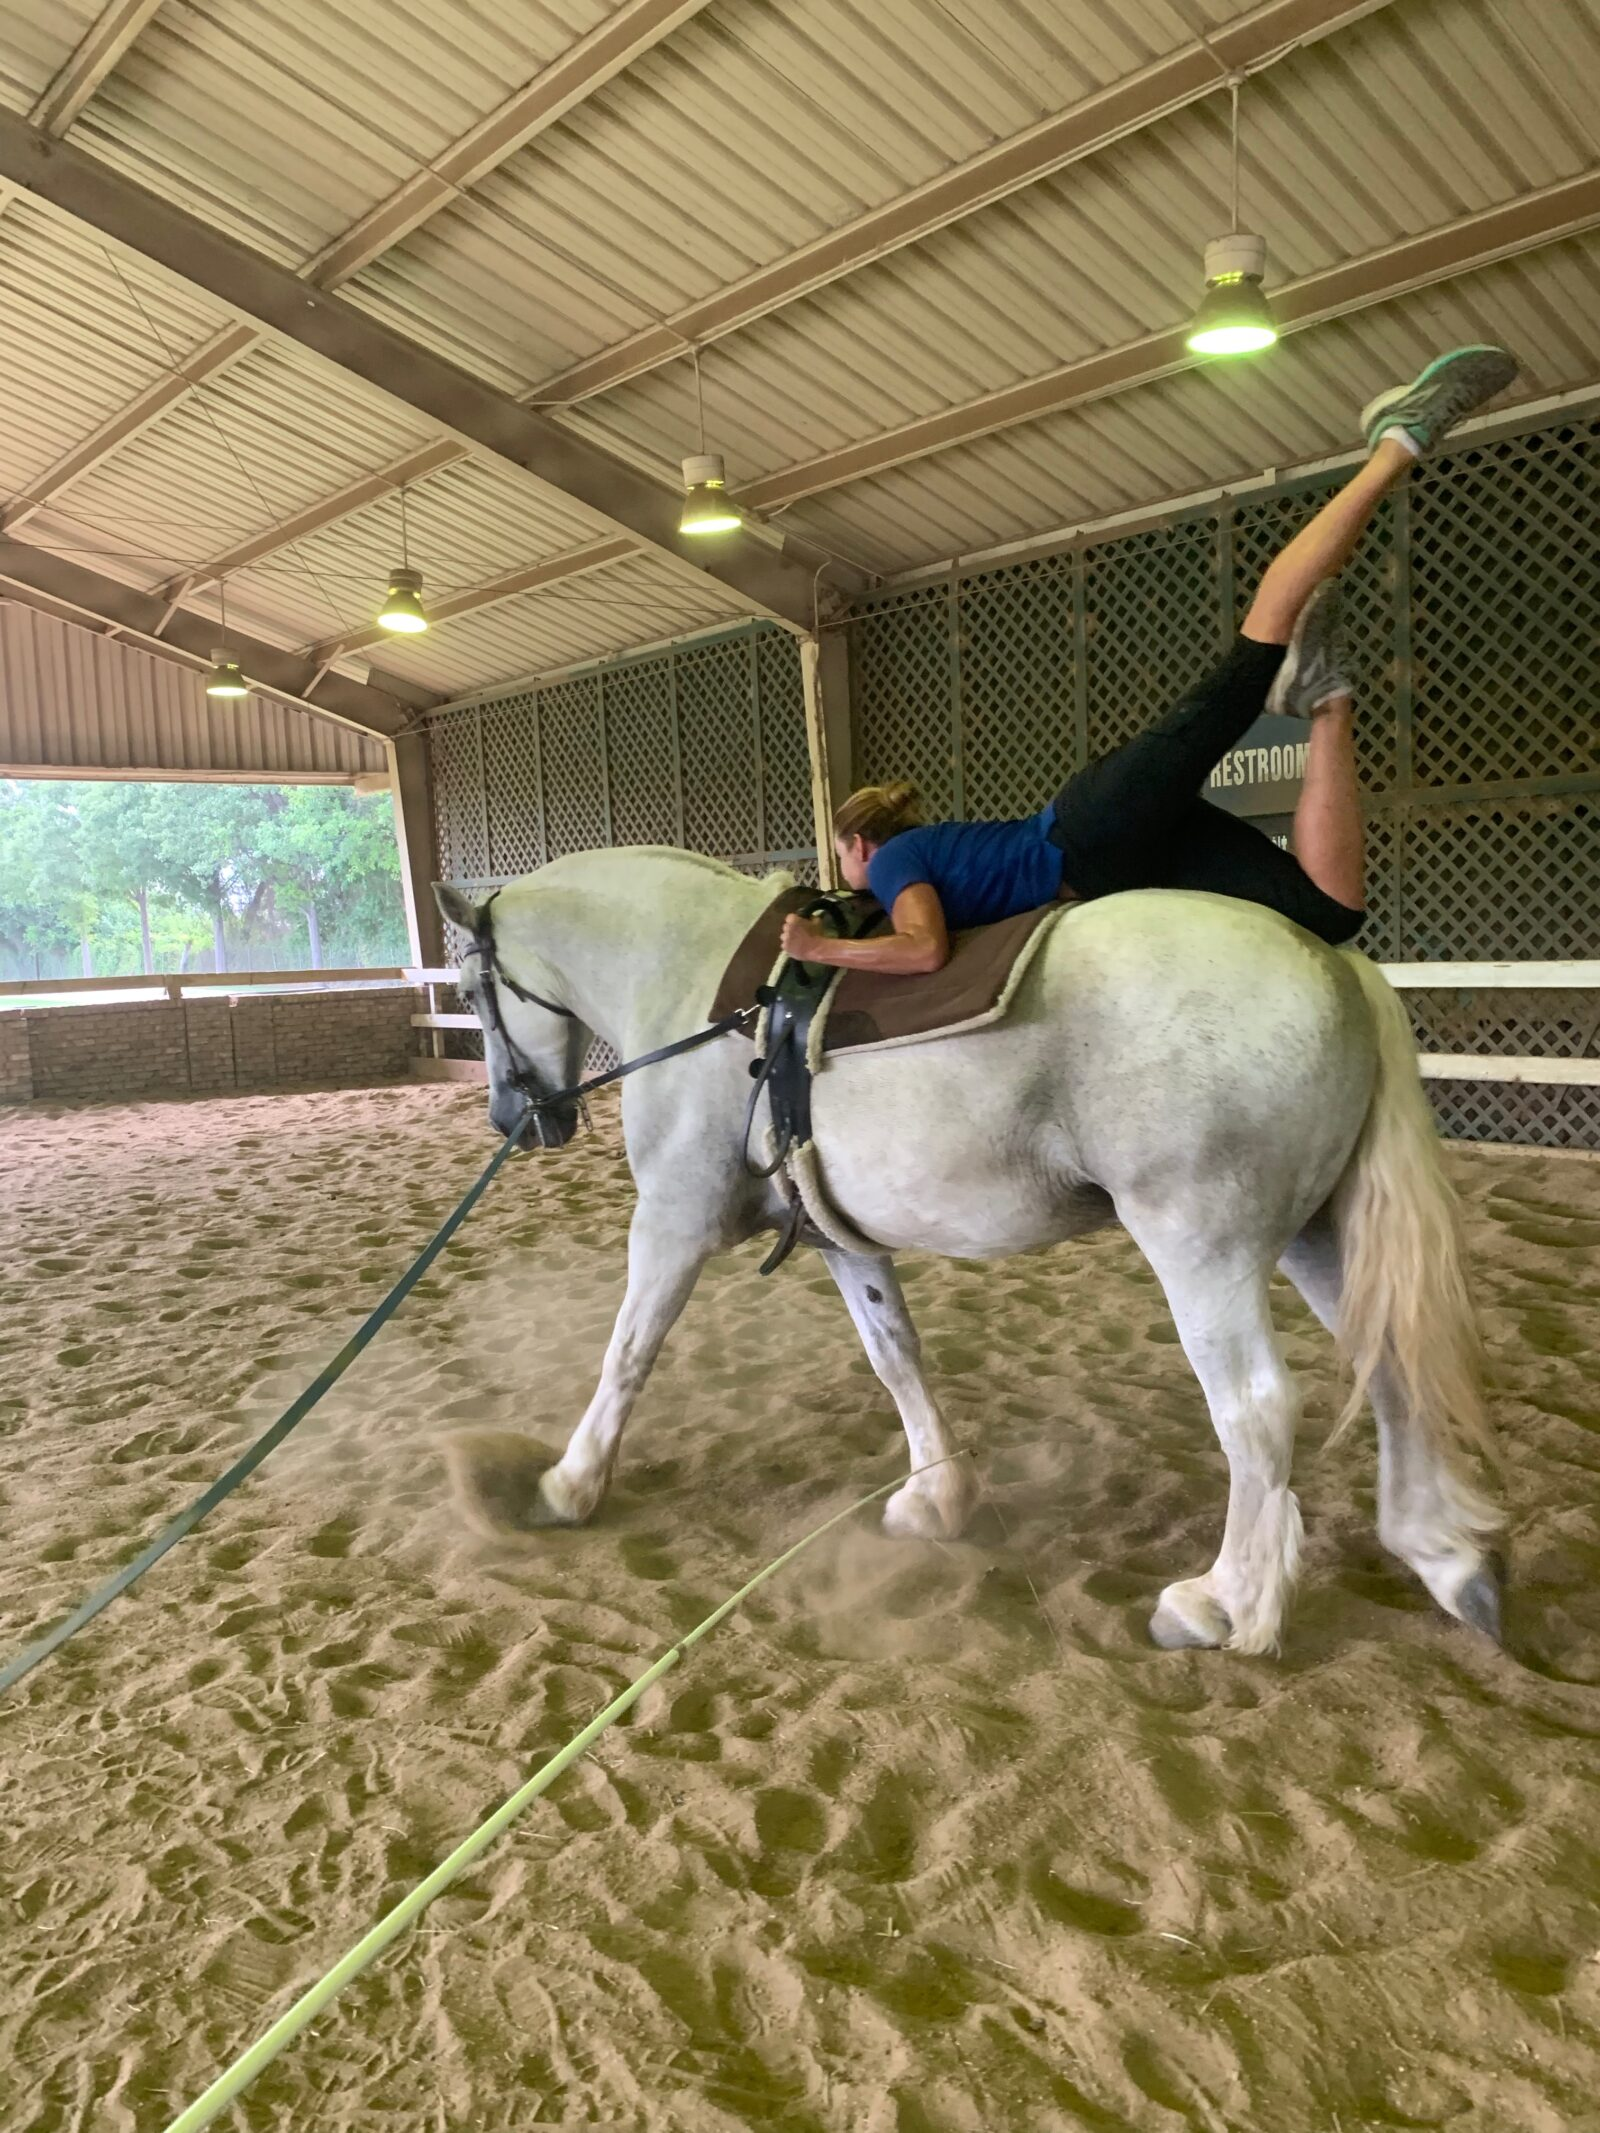 Equestrian vaulting